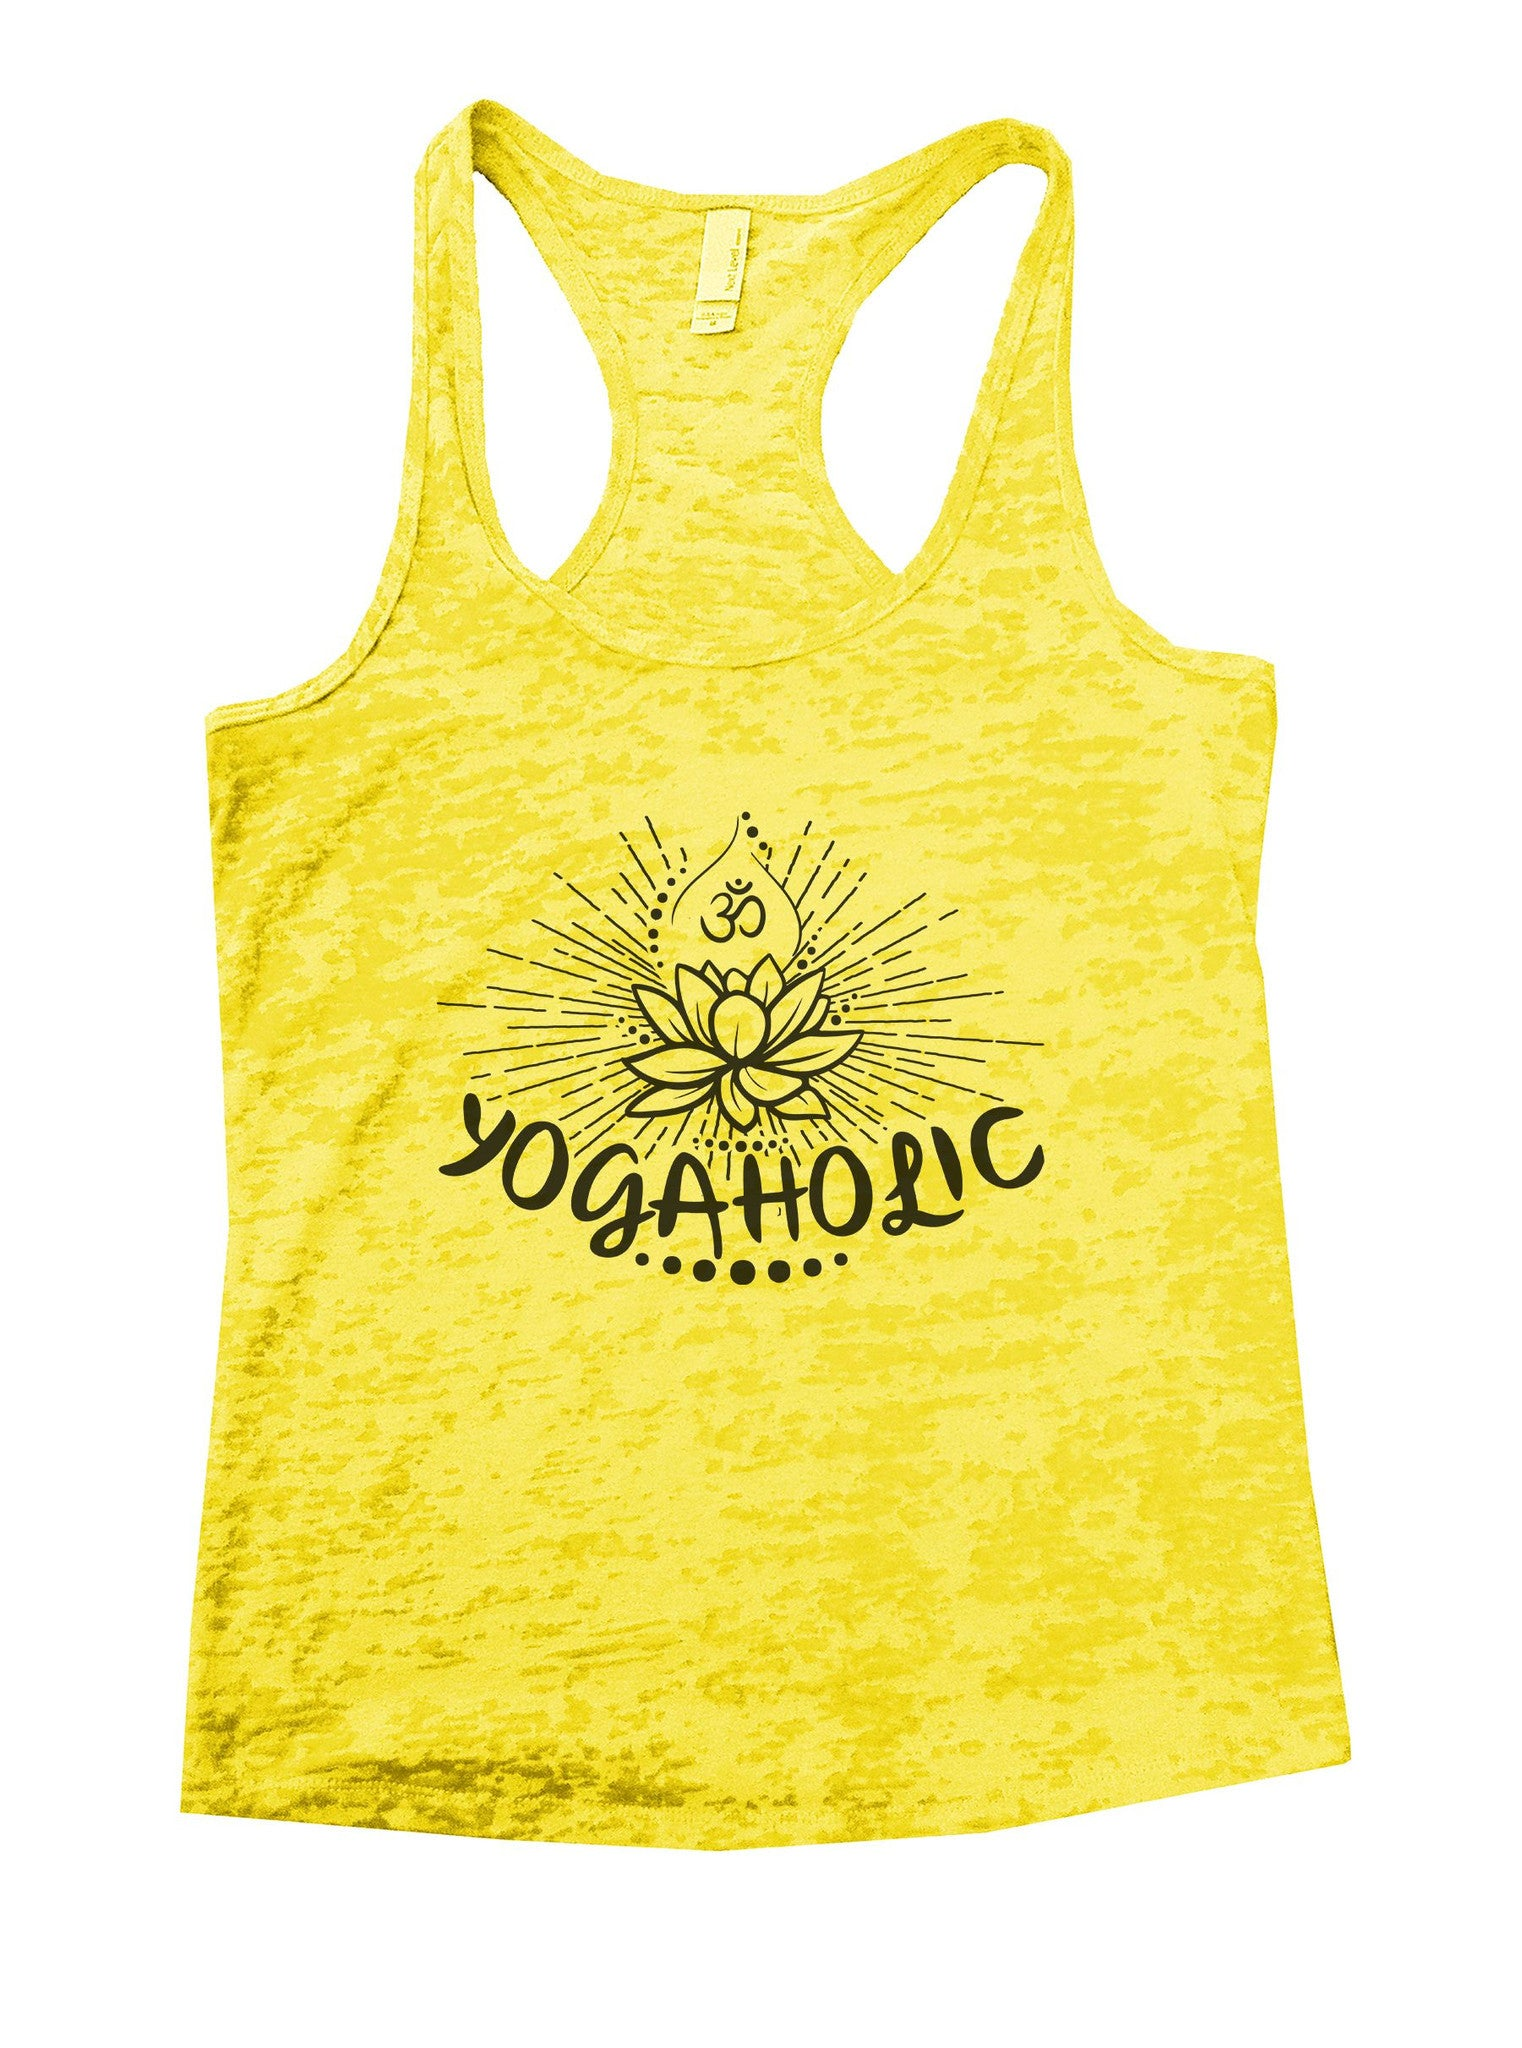 Yogaholic Burnout Tank Top By BurnoutTankTops.com - 1017 - Funny Shirts Tank Tops Burnouts and Triblends  - 7